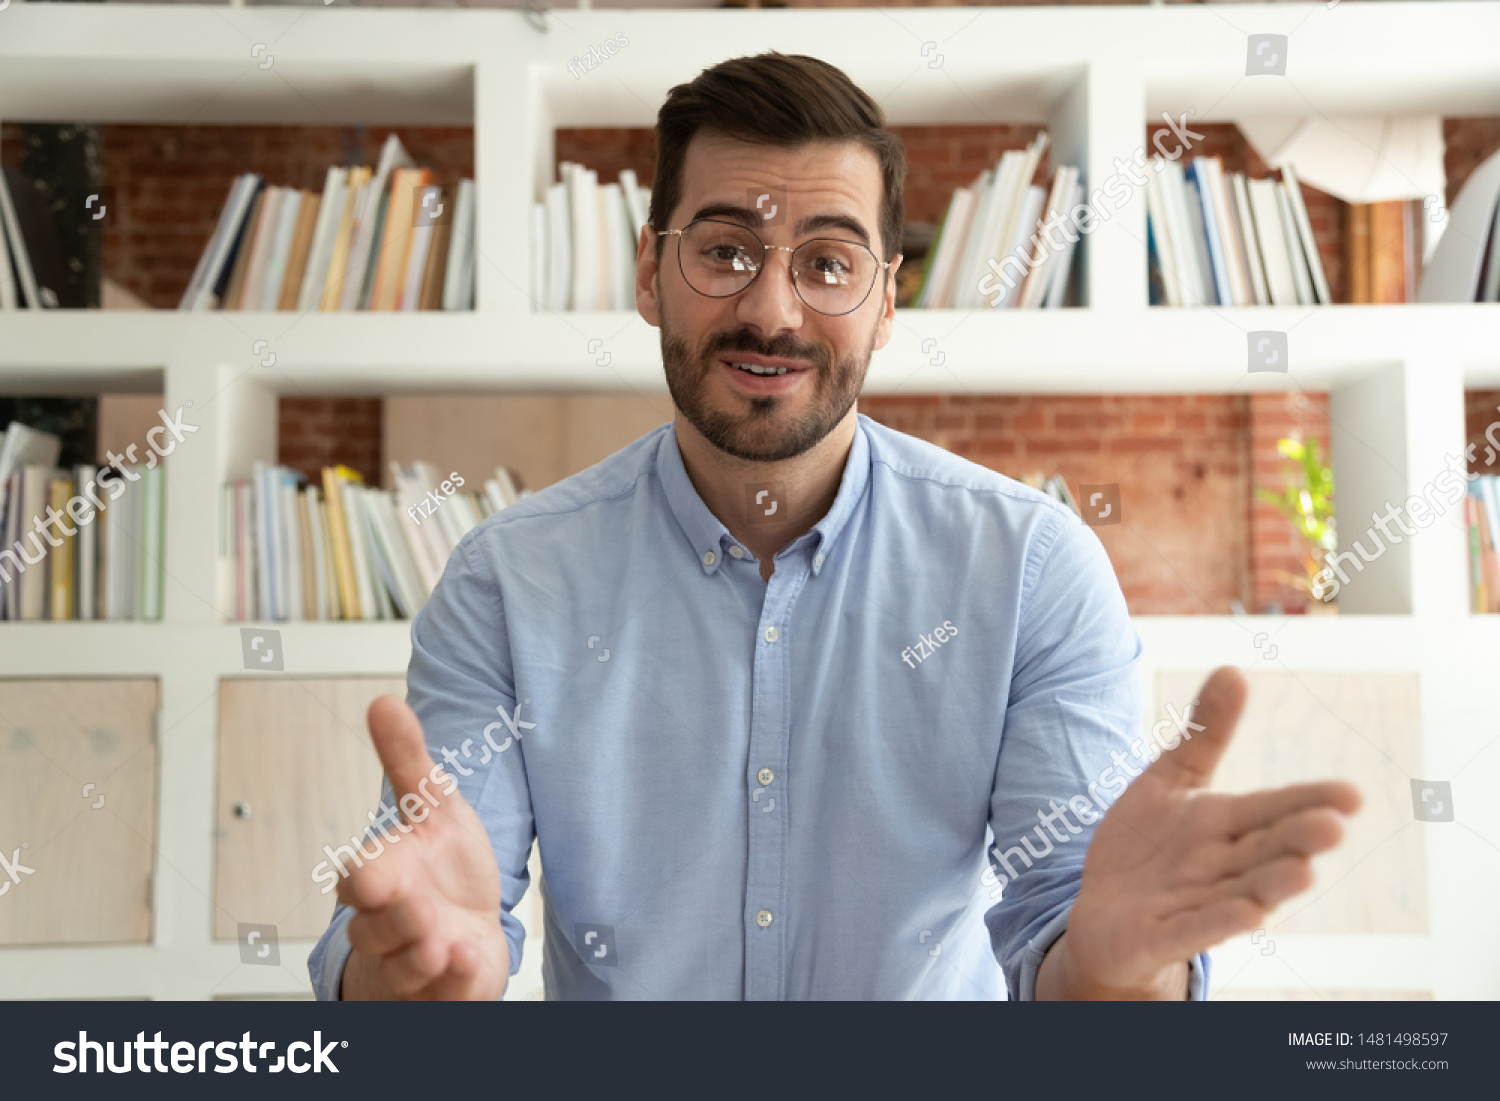 Smiling young businessman sit at desk talk on webcam having video call or conversation with client, motivated millennial male coach or trainer speak shoot online tutorial, record training course #1481498597